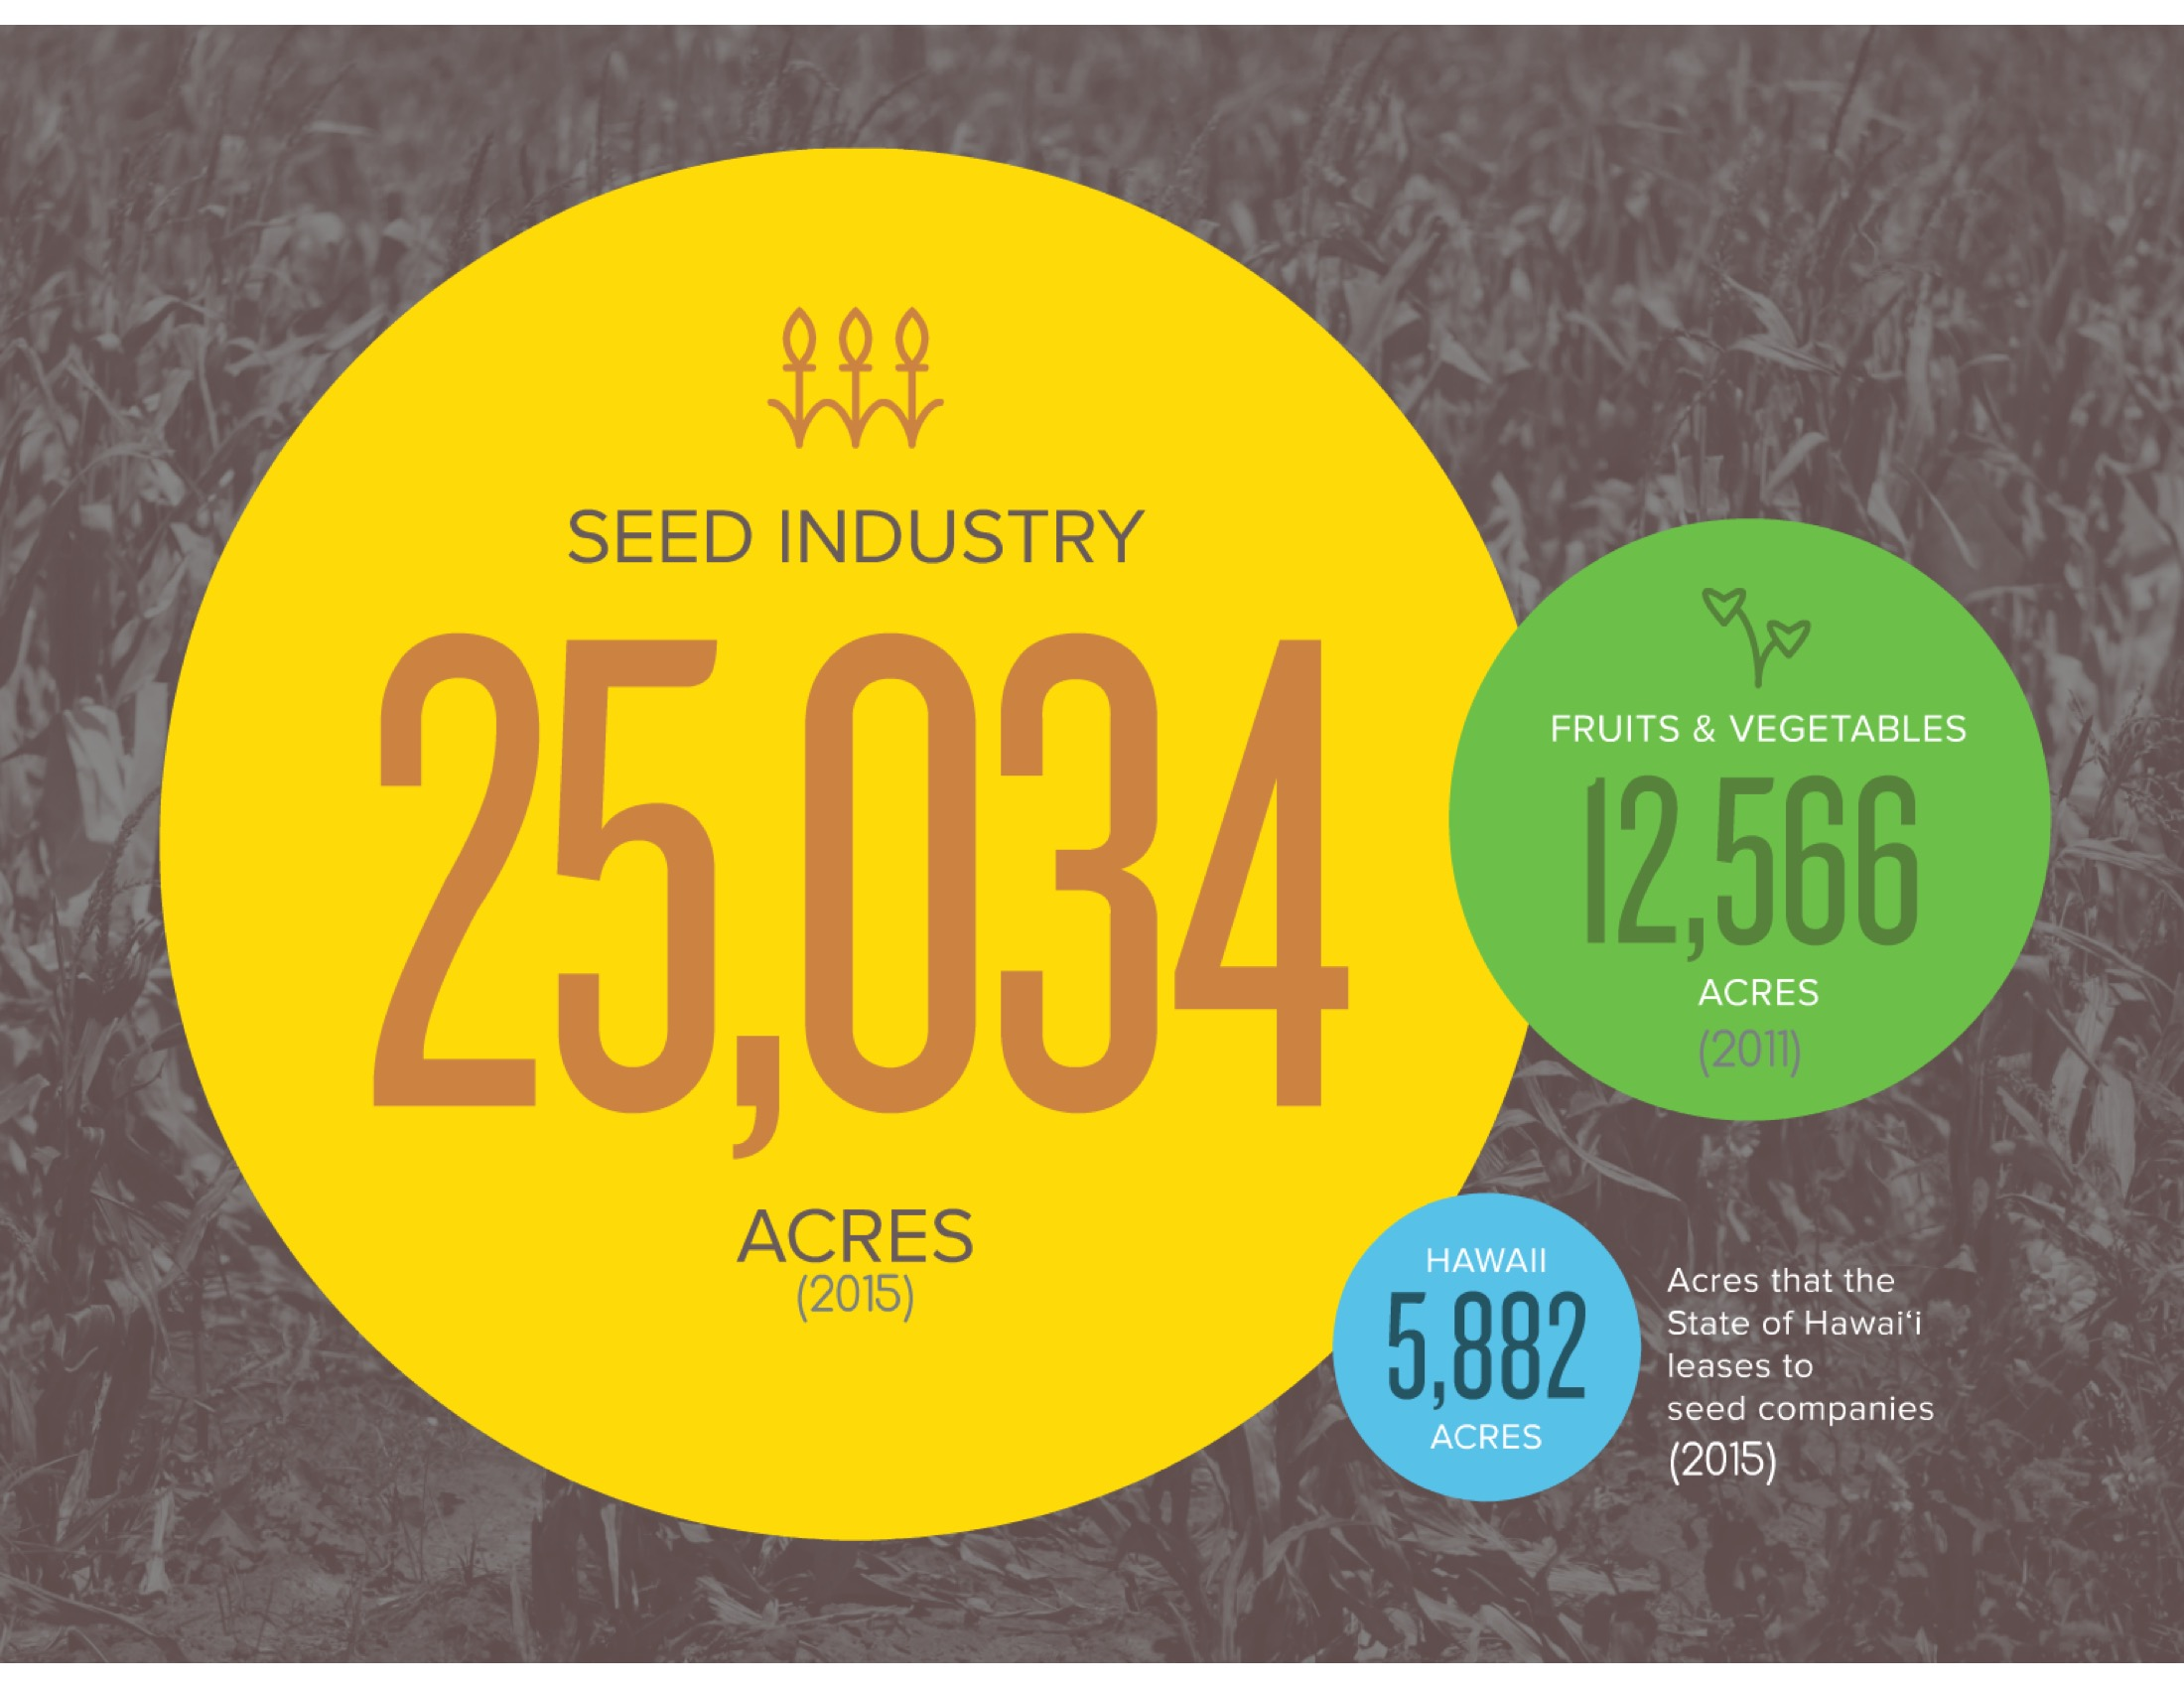 The seed industry's footprint (24,700 acres) is 72% of the total area planted to crops other than sugarcane or pineapple (34,400 acres).